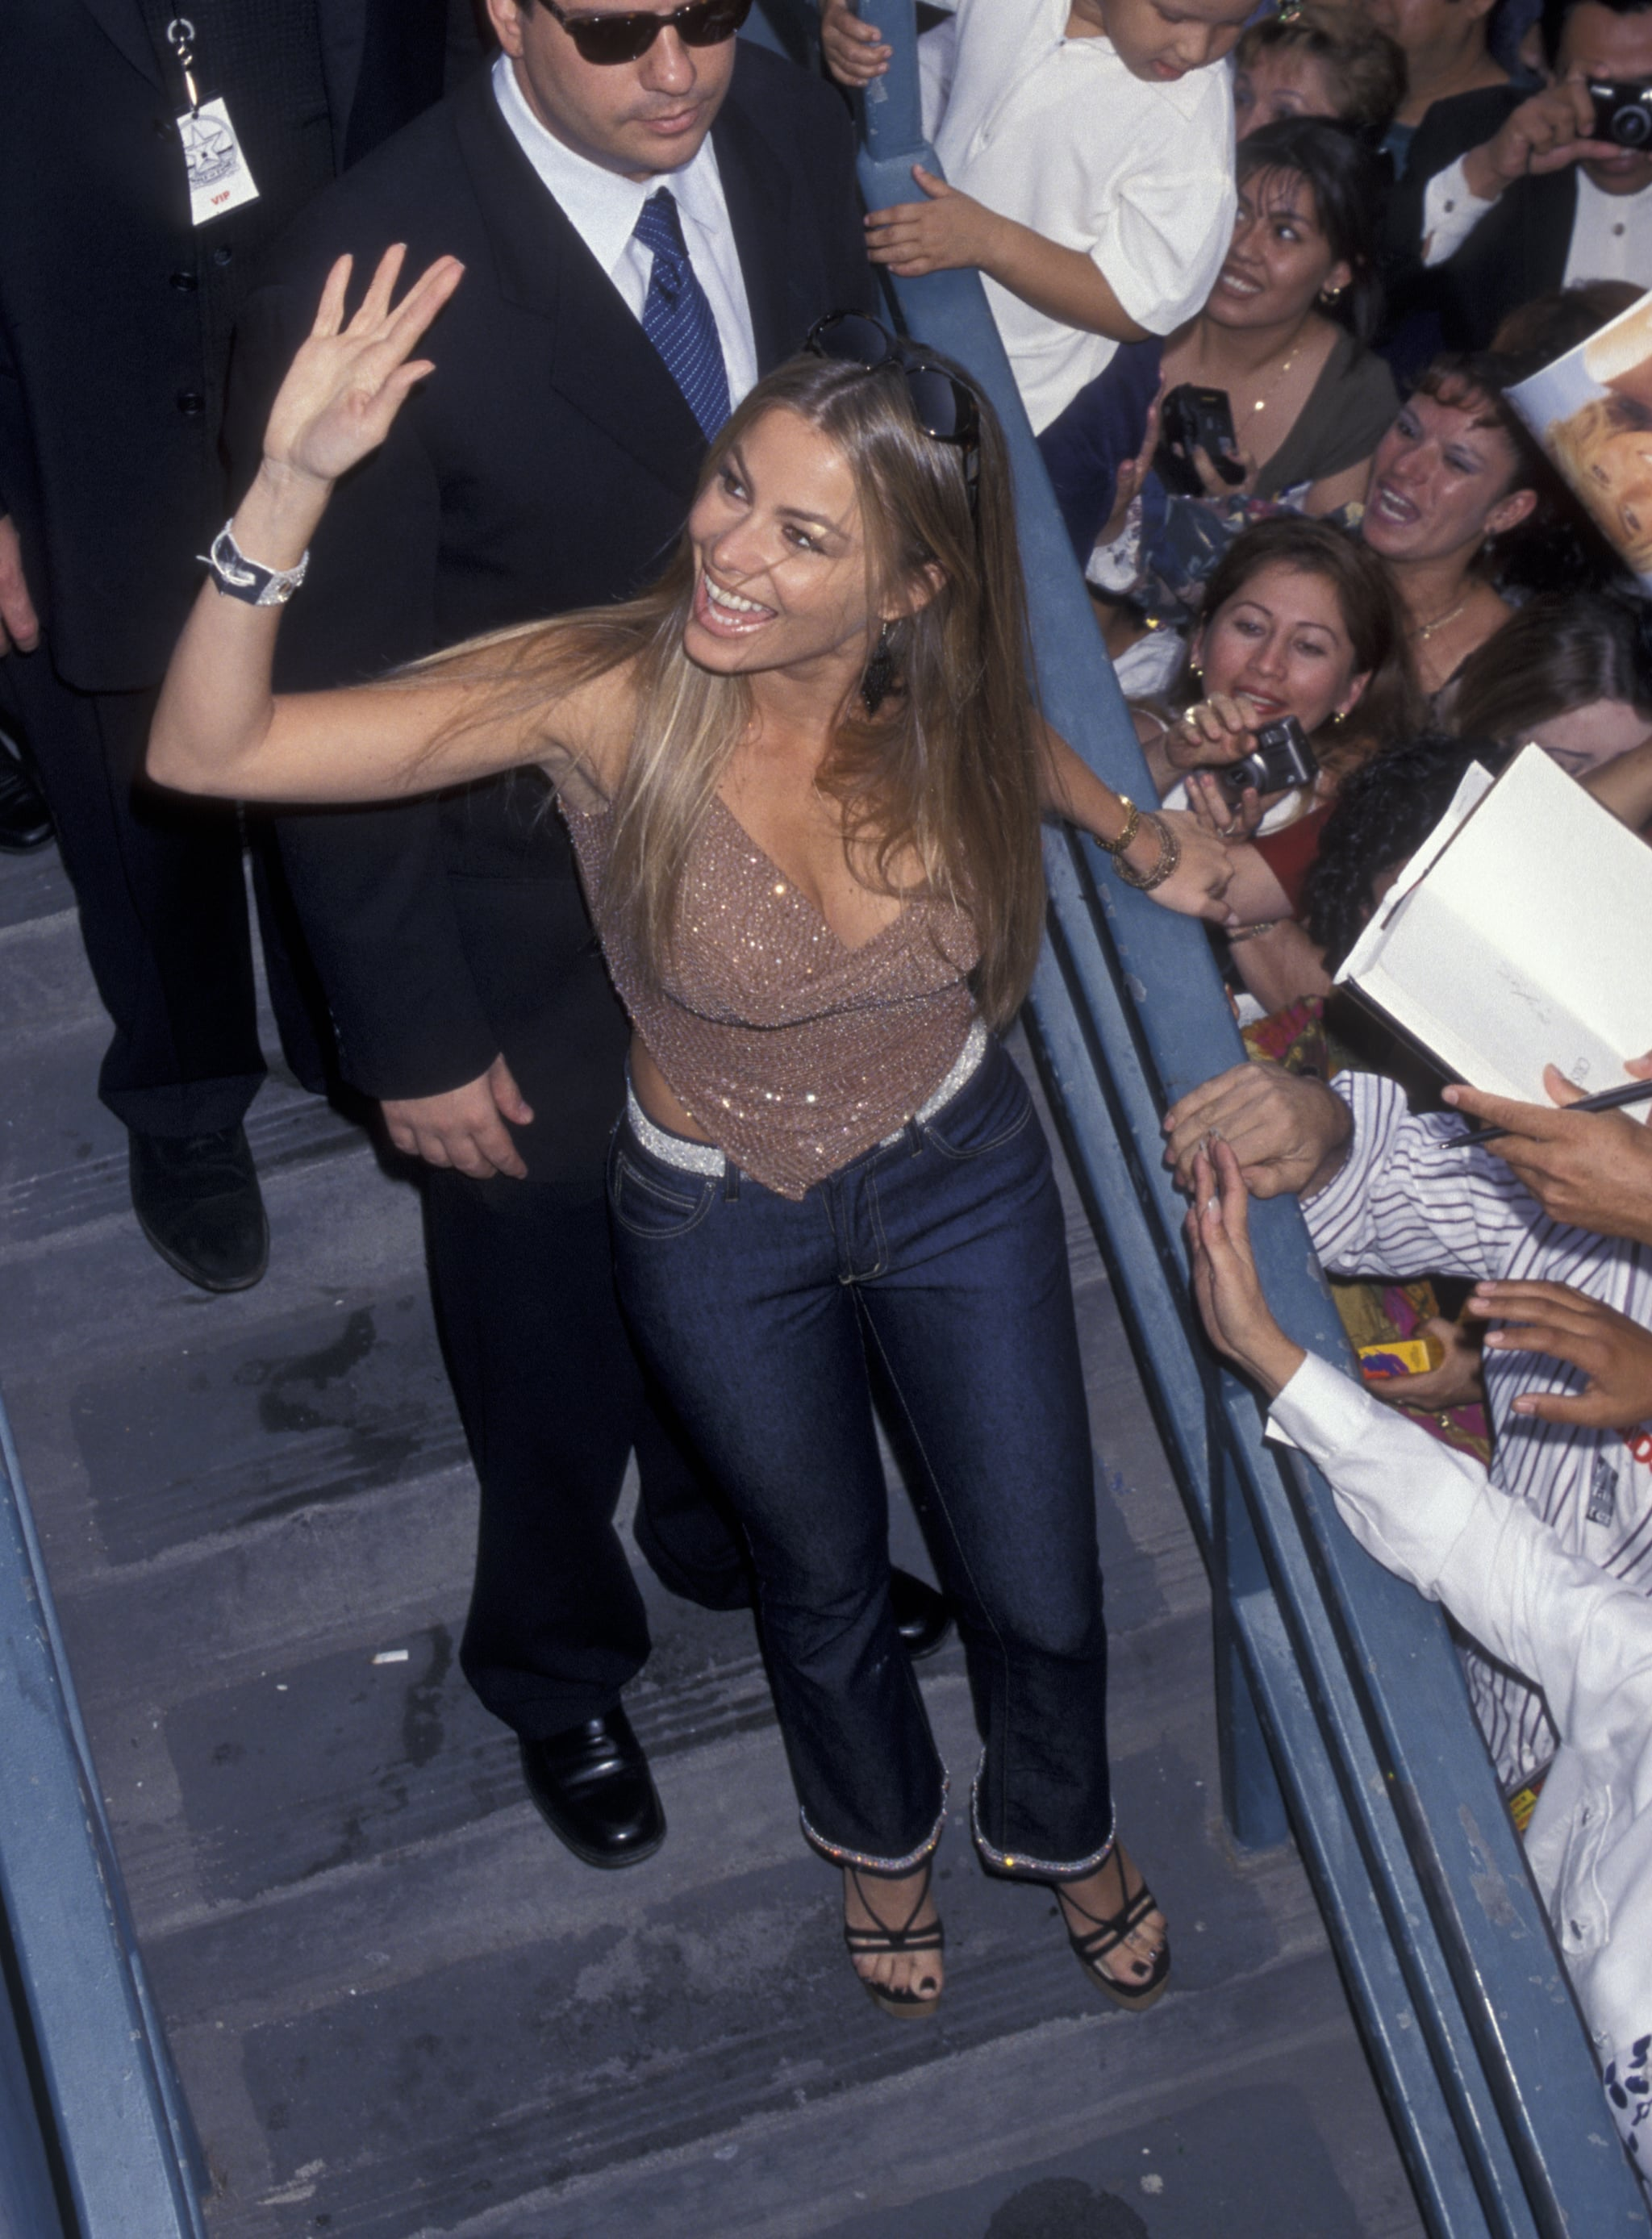 HOLLYWOOD, CA - NOVEMBER 4:  Sofia Vergara attends Walk of Fame Star Ceremony Honoring Cristina Saralegui  on November 4, 1999 at Hollywood Boulevard in Hollywood, California. (Photo by Ron Galella, Ltd./Ron Galella Collection via Getty Images)